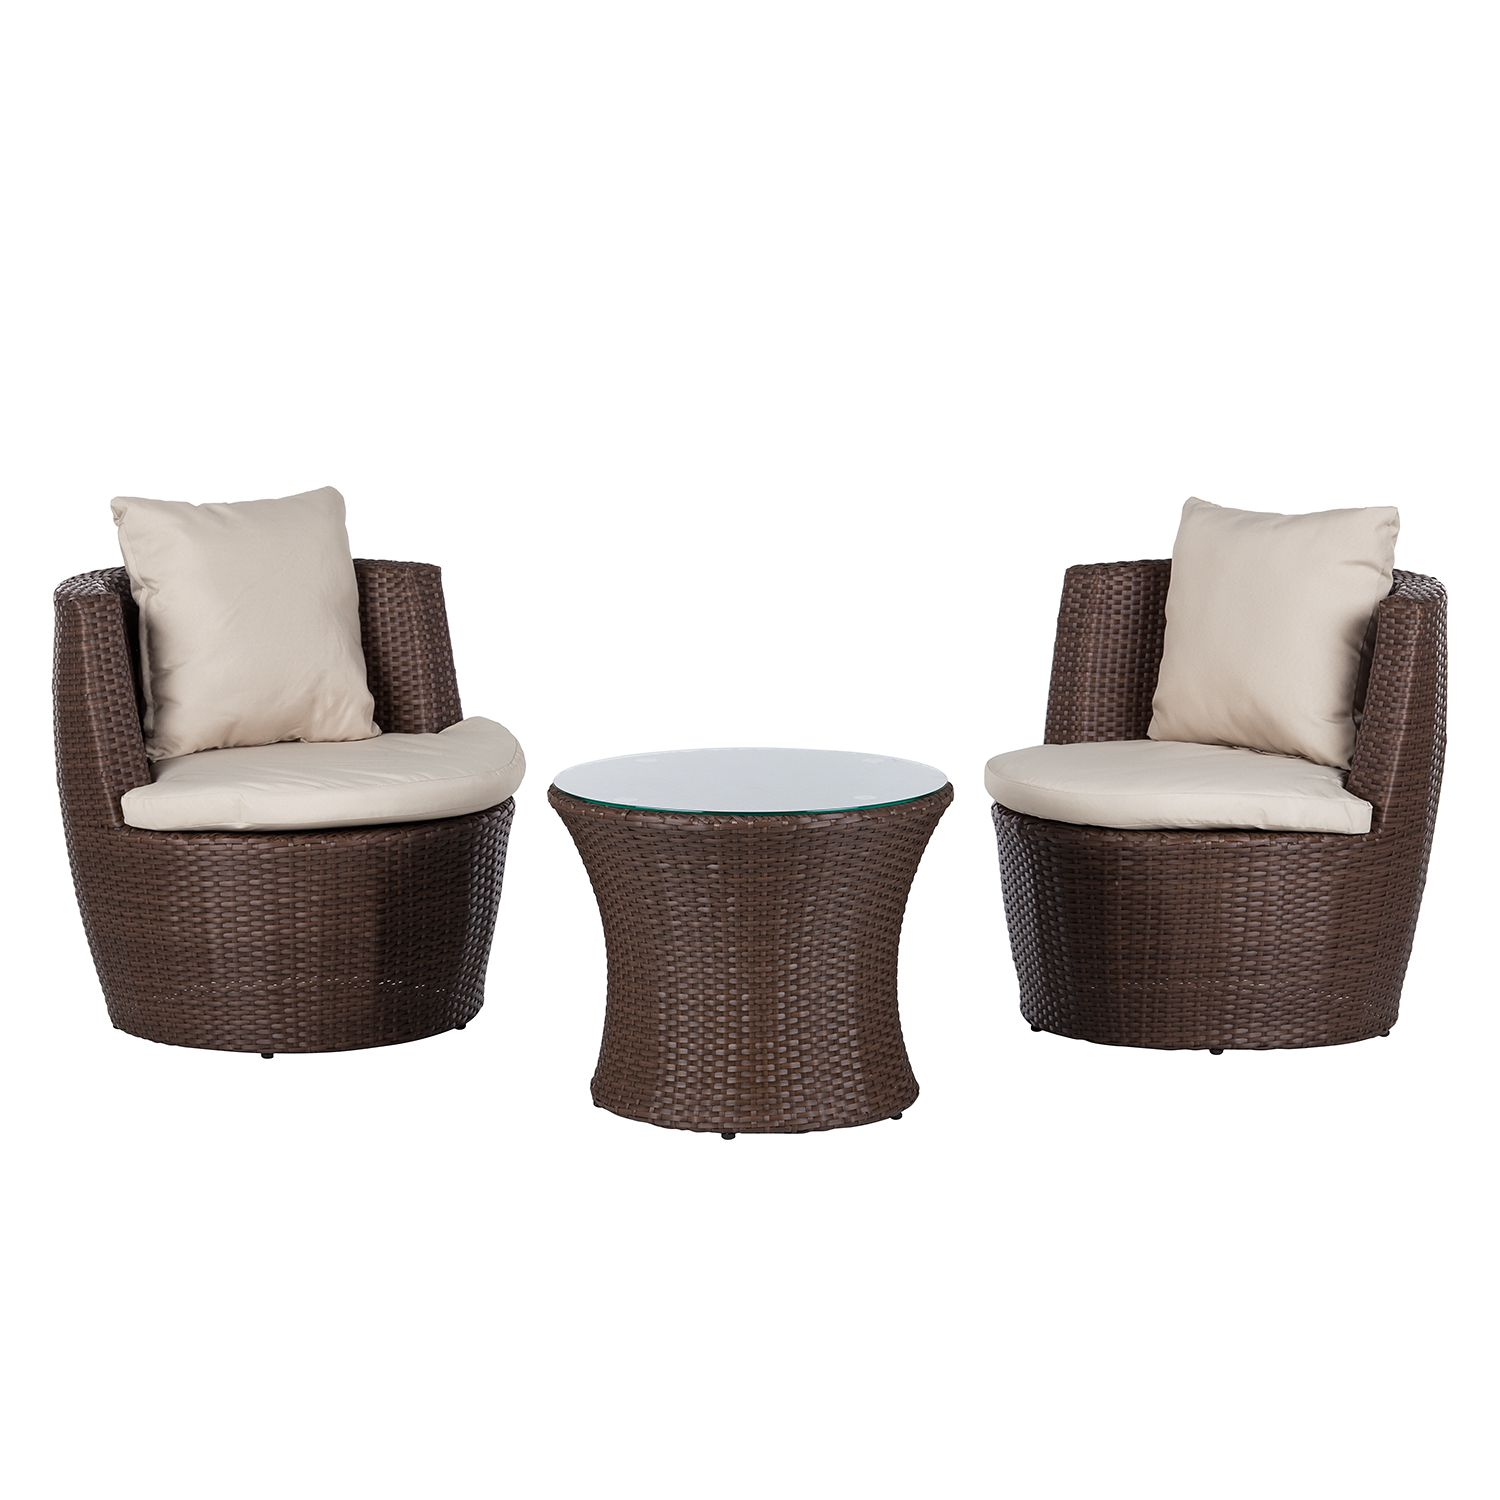 balkon set rattanesco puca 3 teilig polyrattan. Black Bedroom Furniture Sets. Home Design Ideas